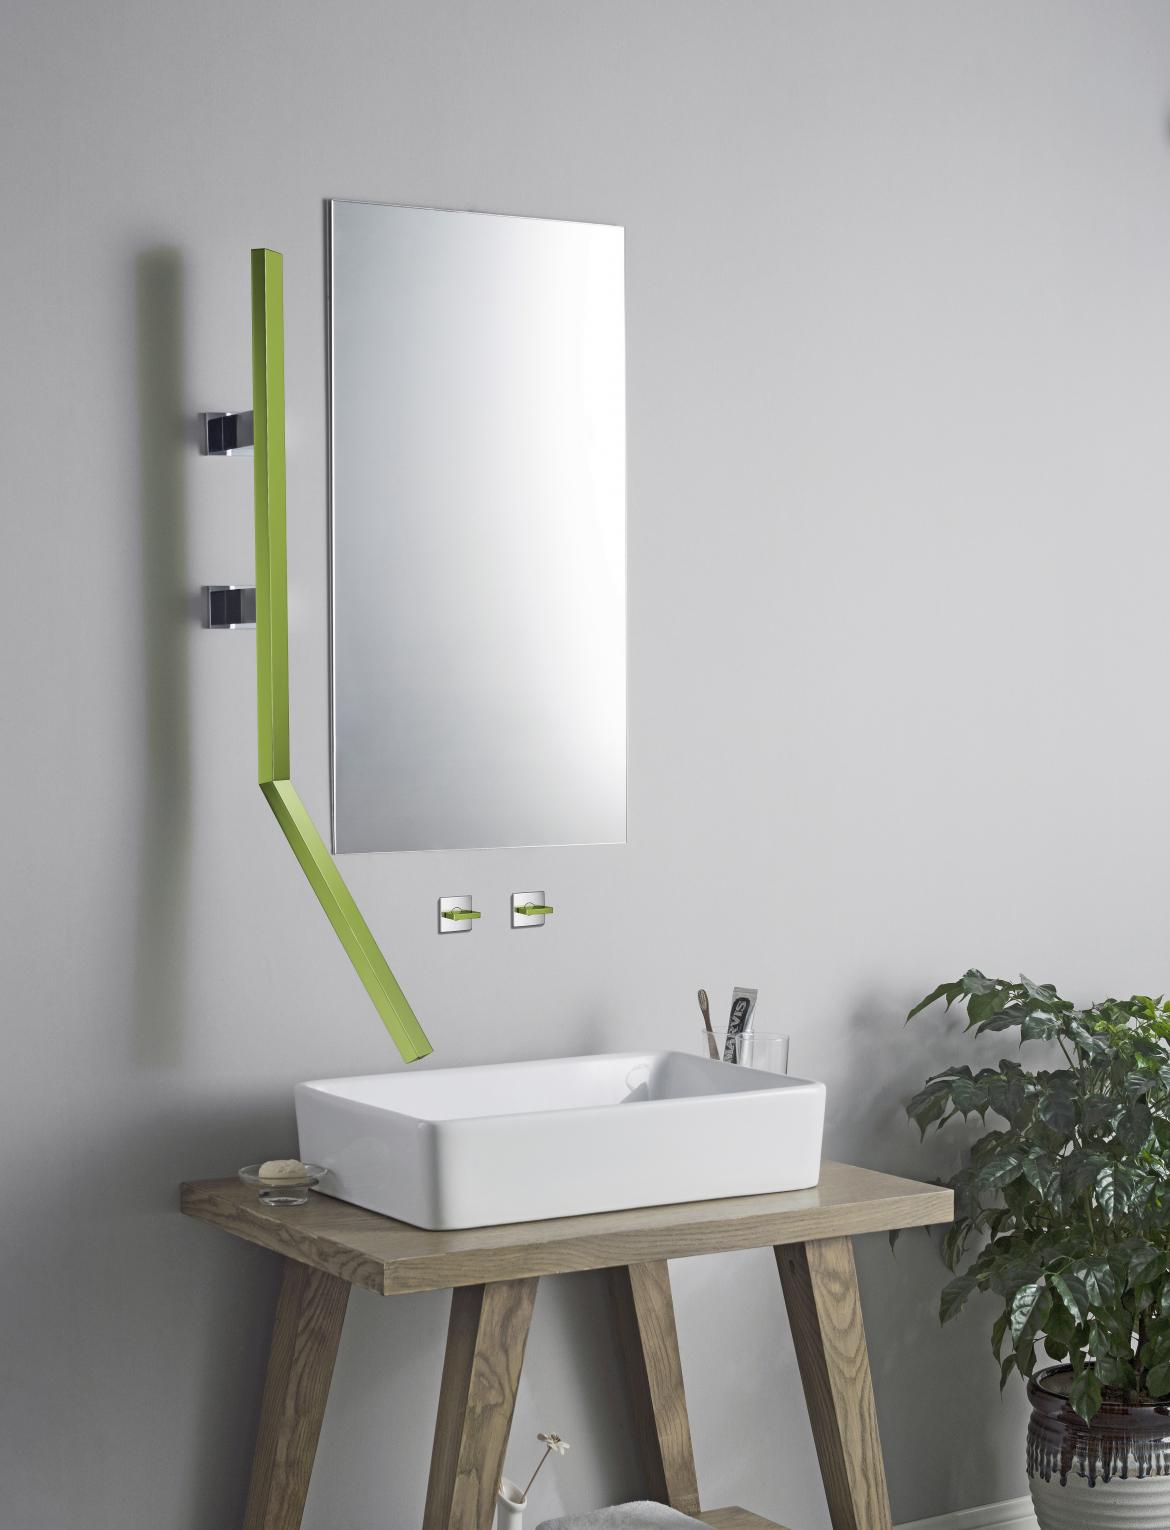 Isenberg Infinity wall mount bath faucet Color Green installed